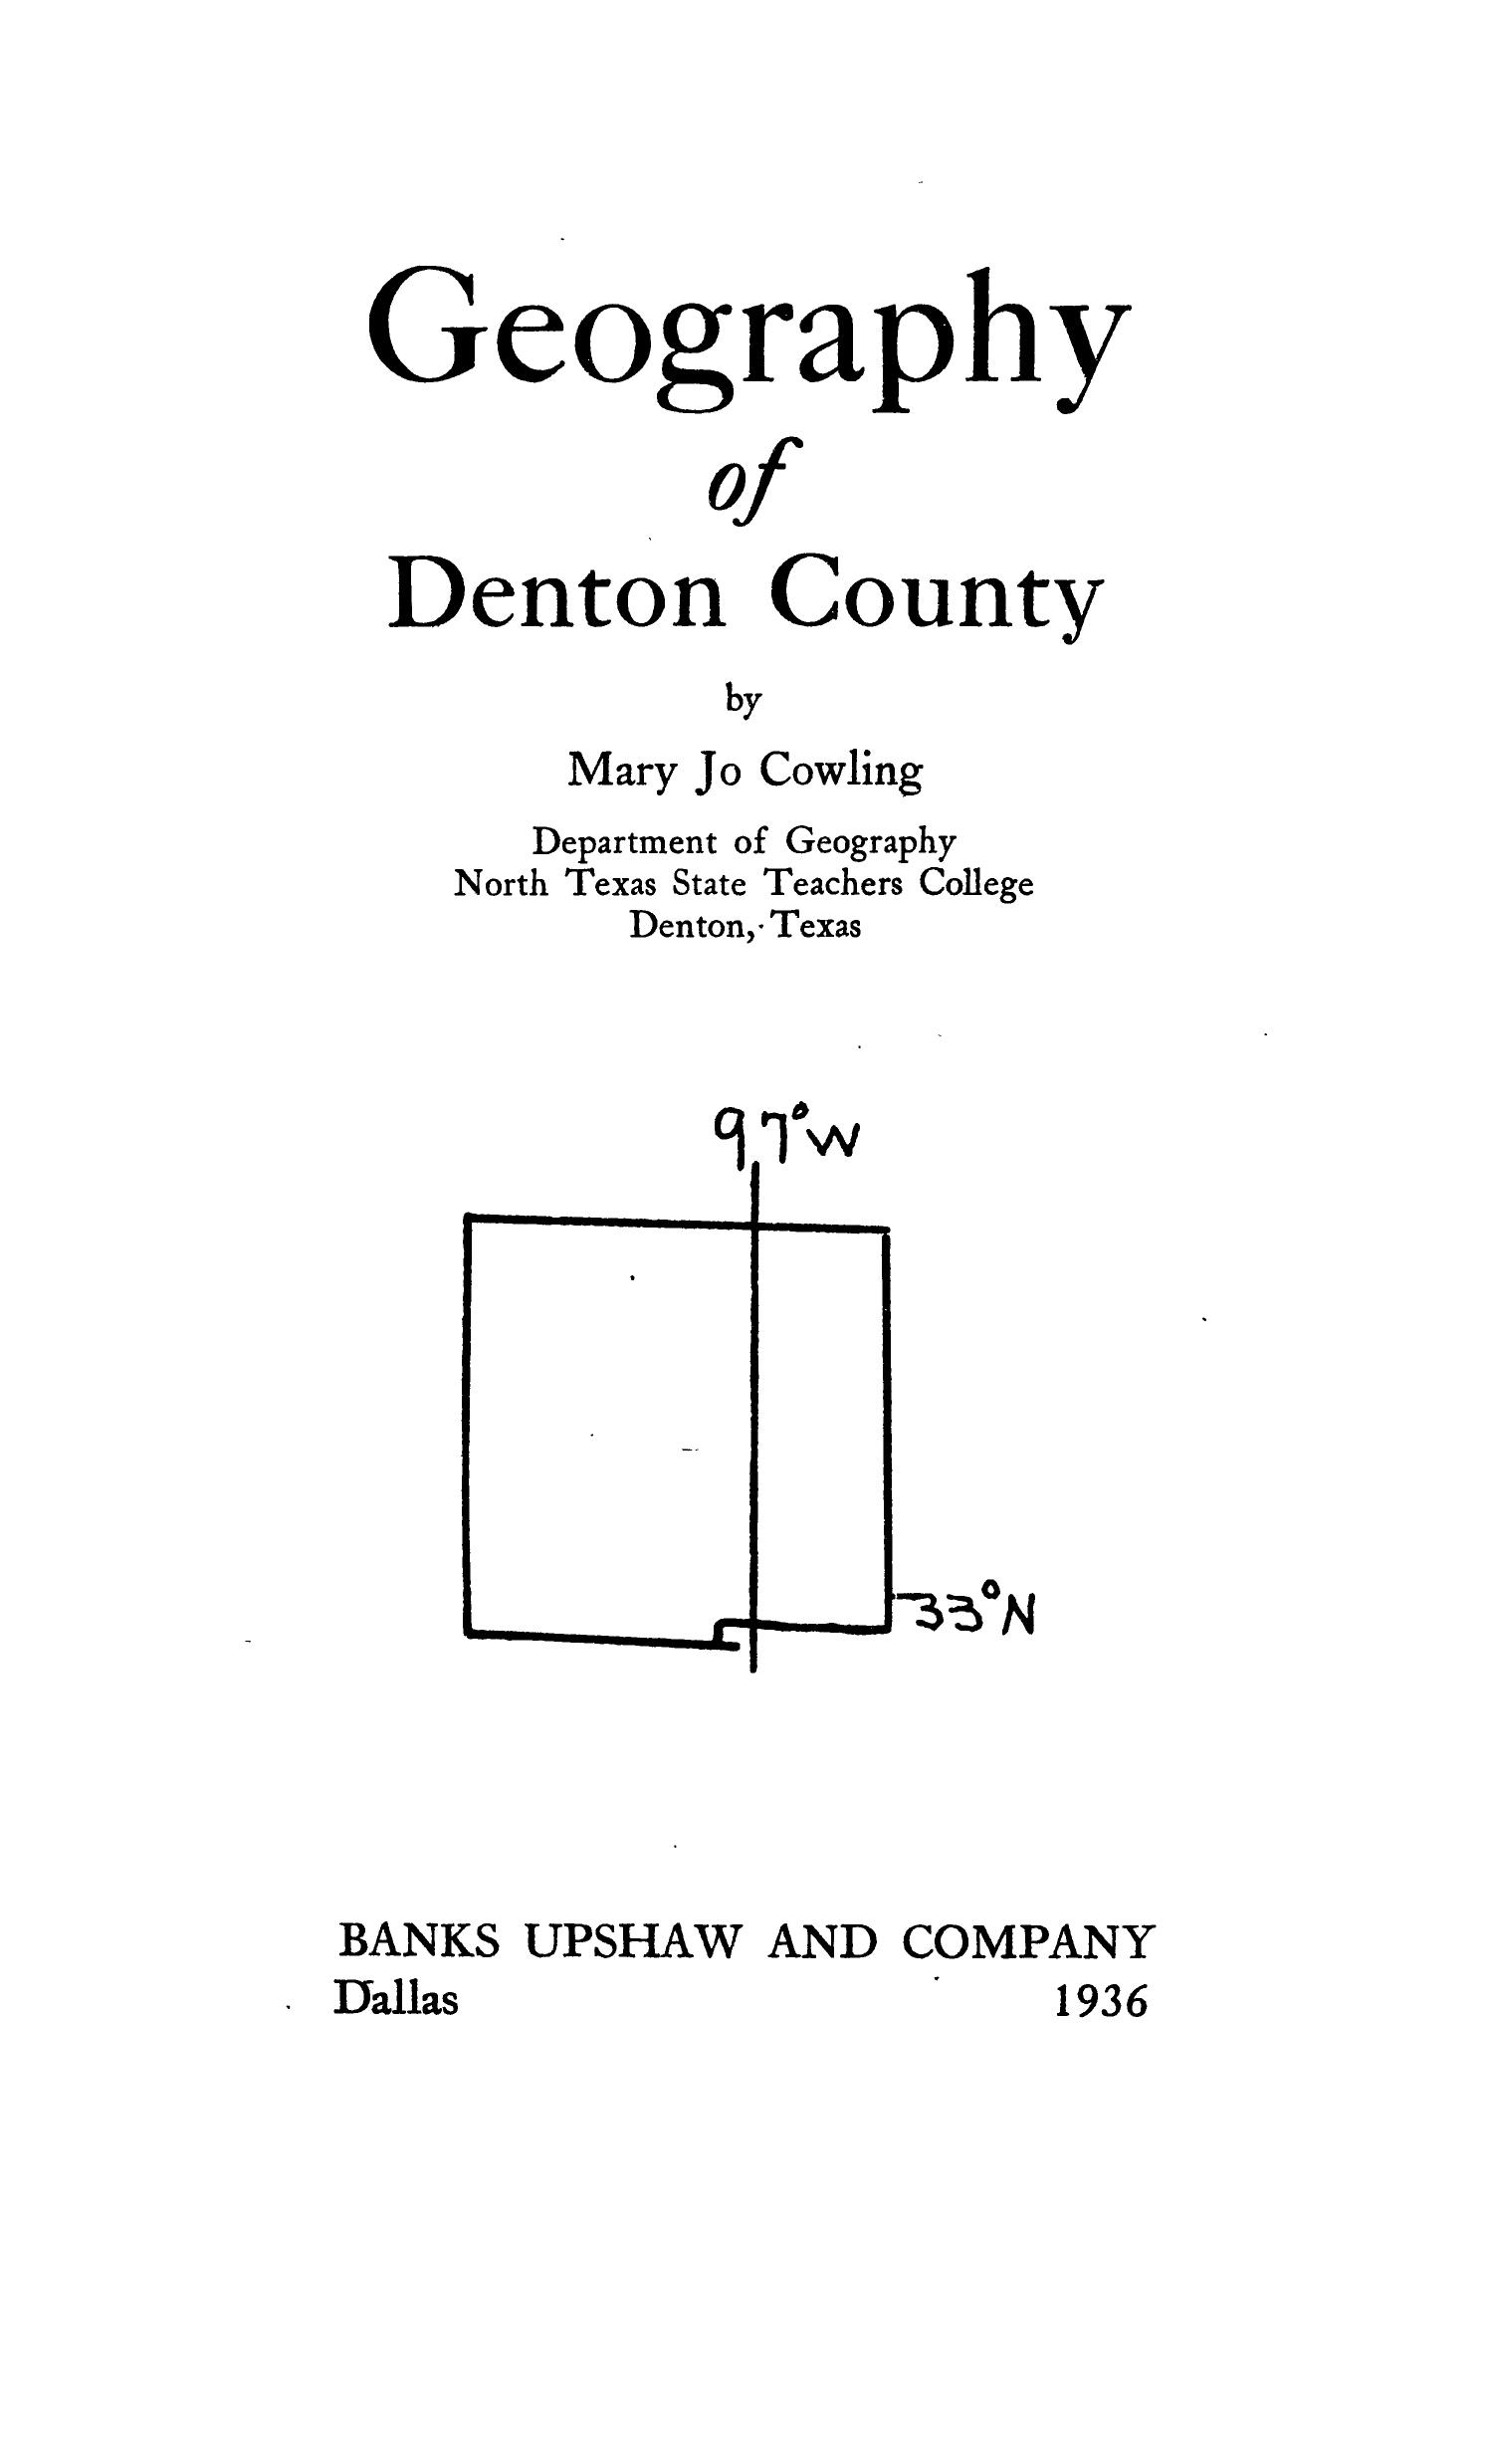 Geography of Denton County                                                                                                      None